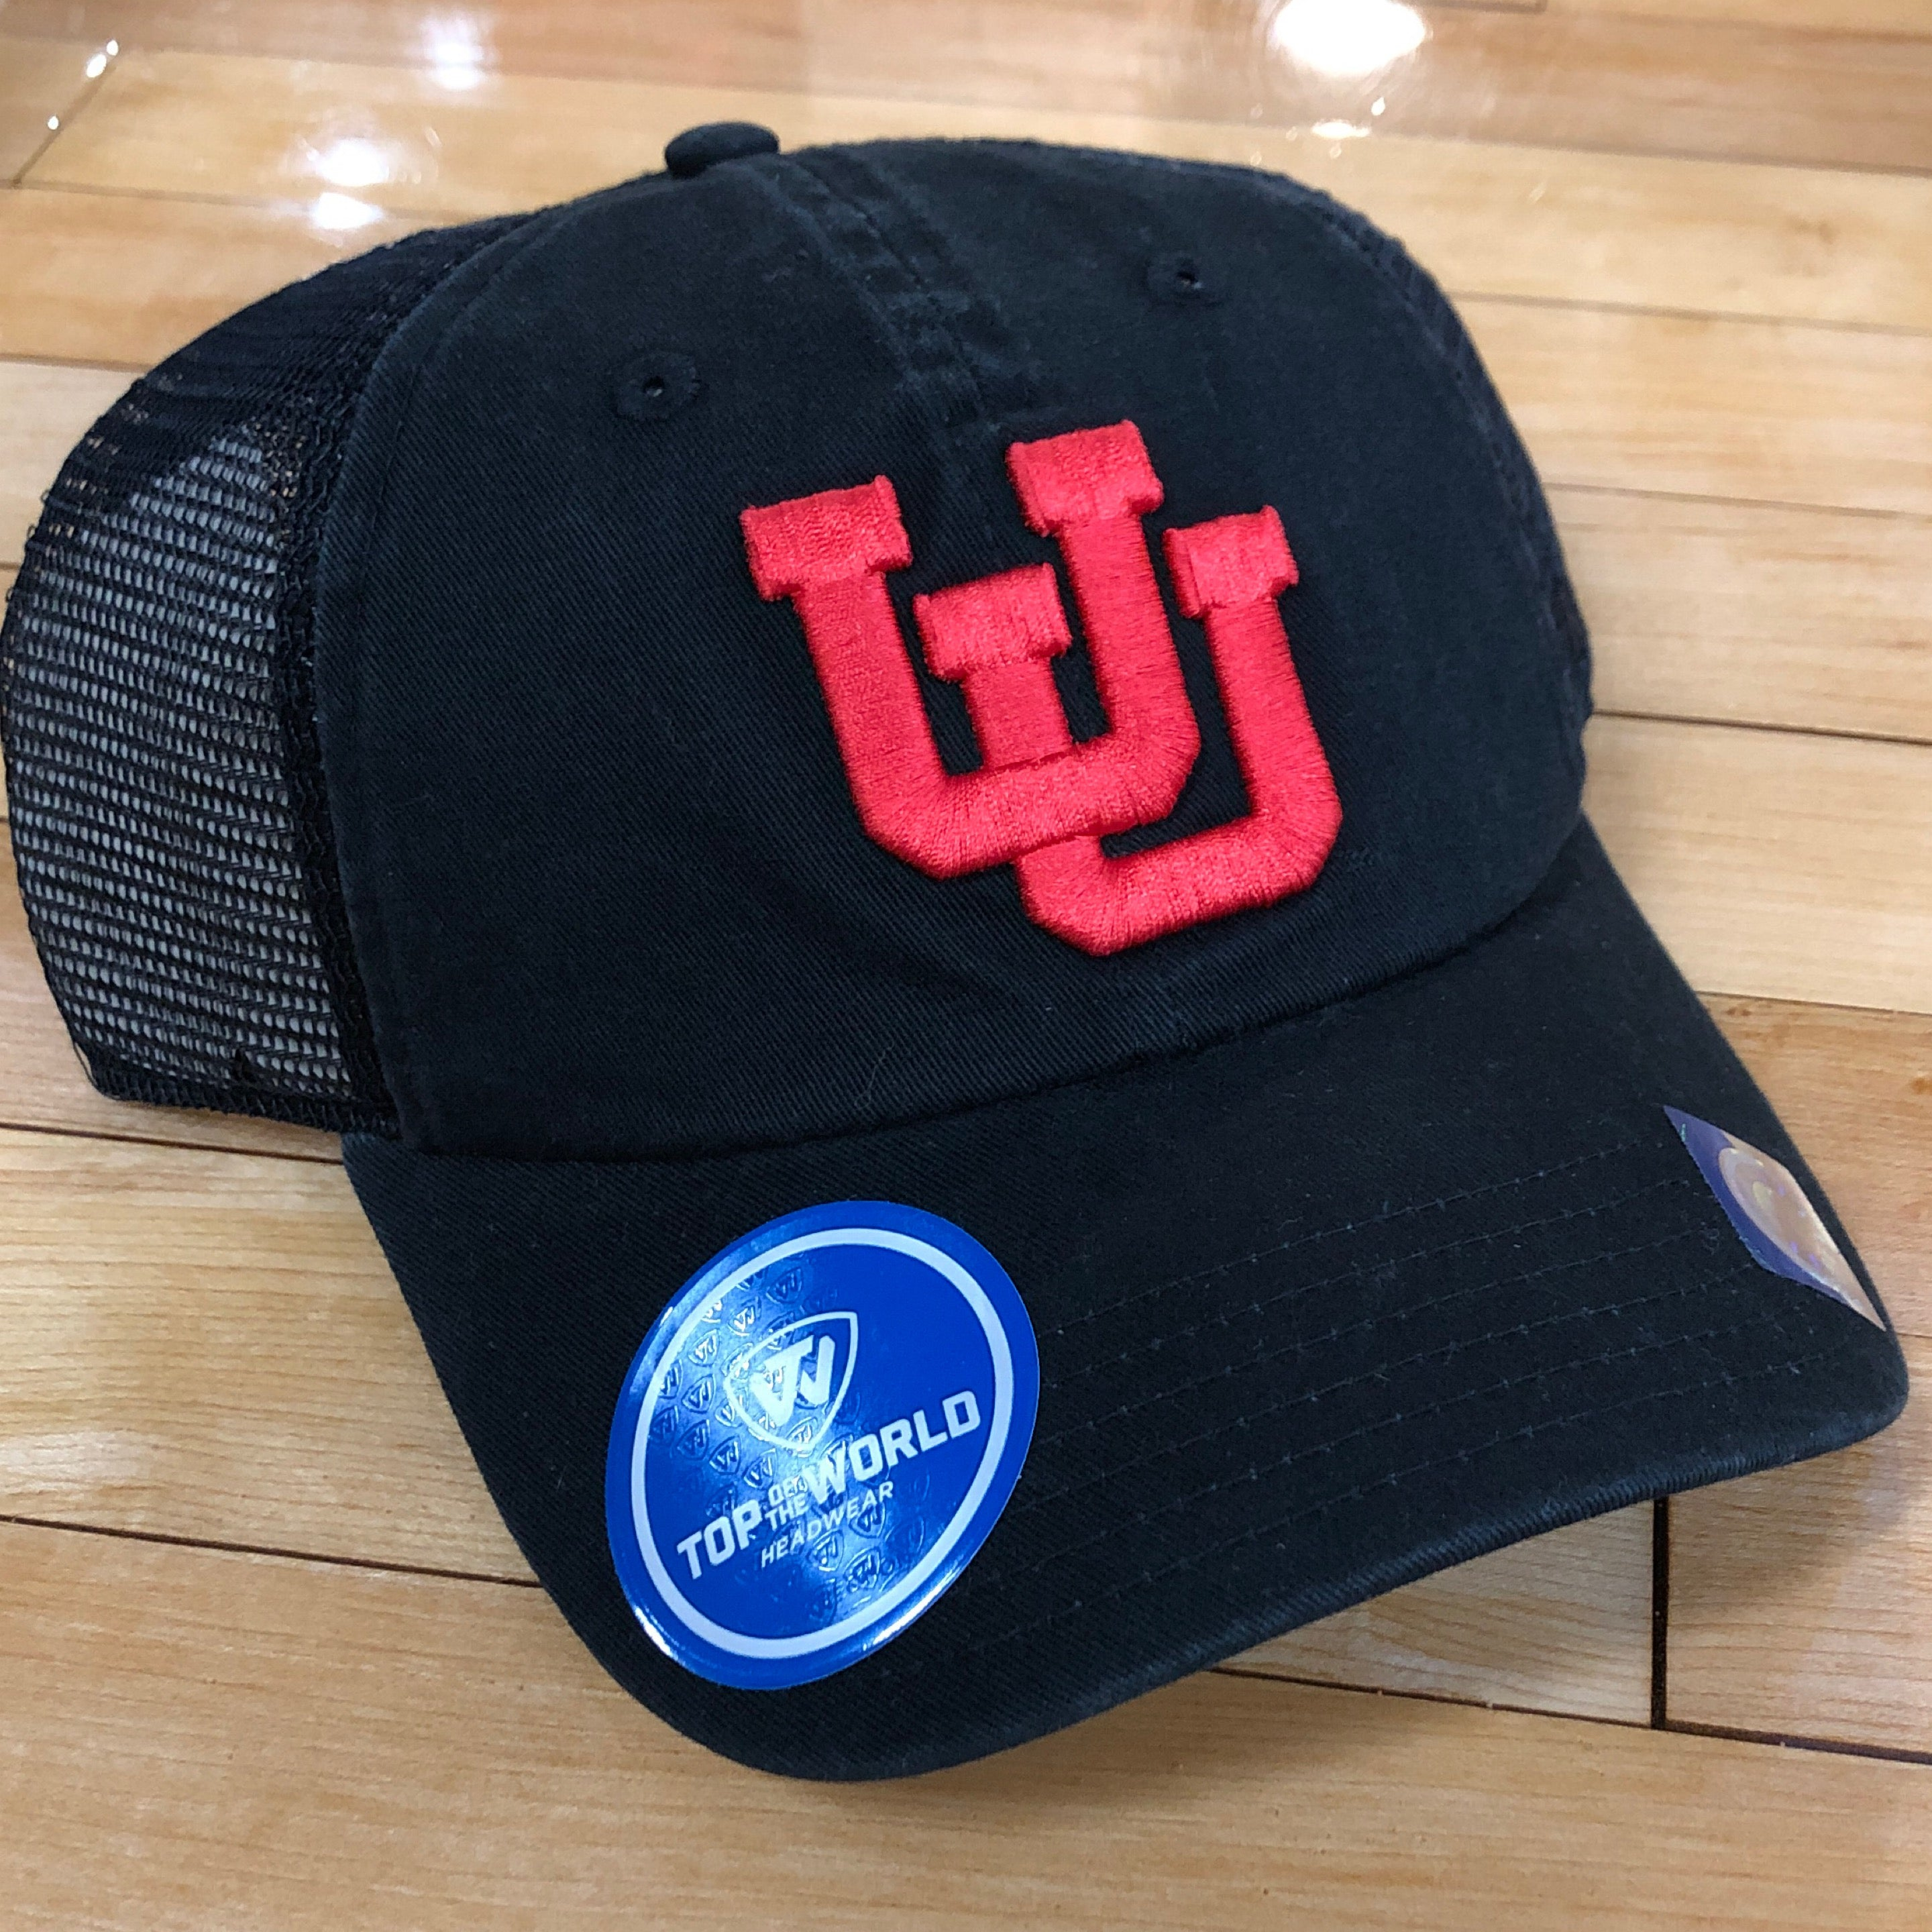 a8301872ed0 Utah Top of the World Backroad UU Blk Blk blk hat – Utah Sports ...